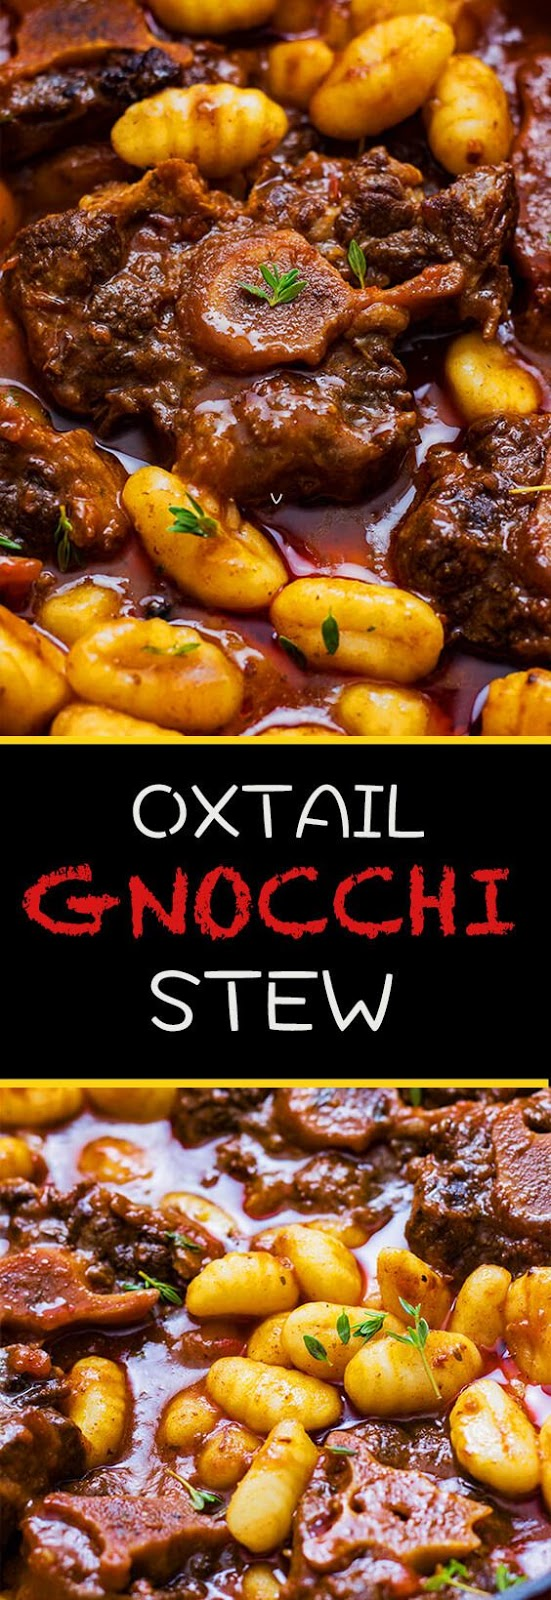 New Oxtail and Gnocchi Stew